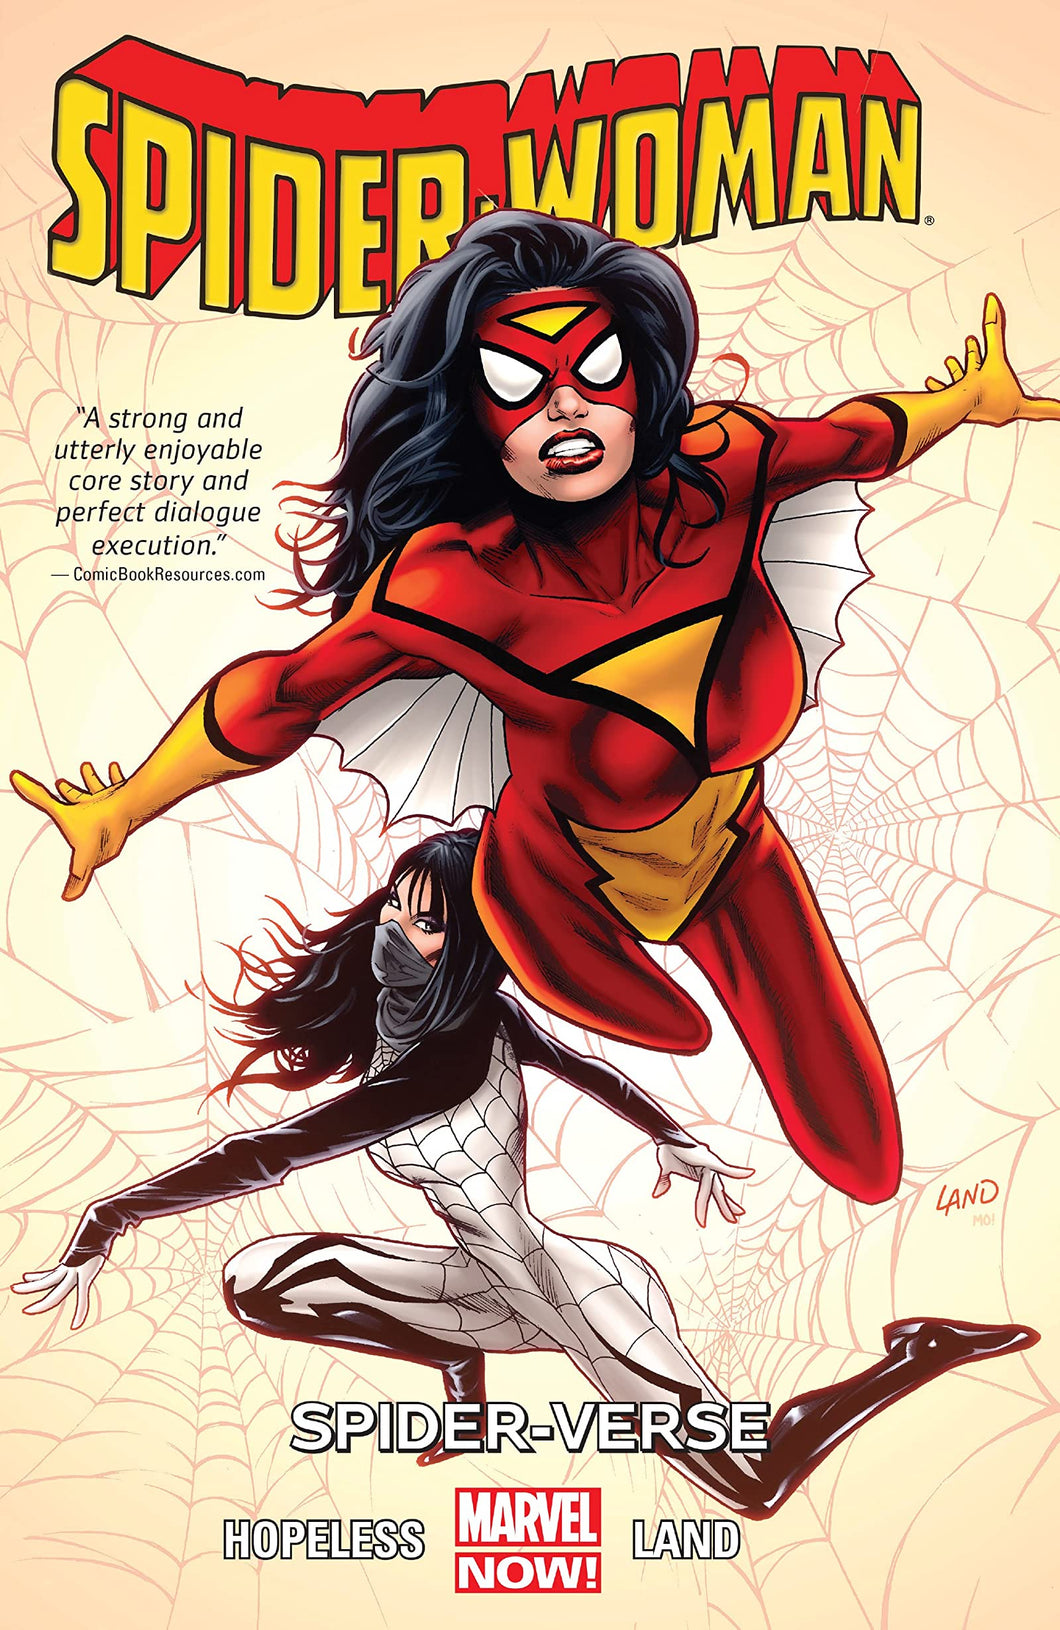 Spider-Woman Volume 1: Spider-Verse (TPB) (2015)